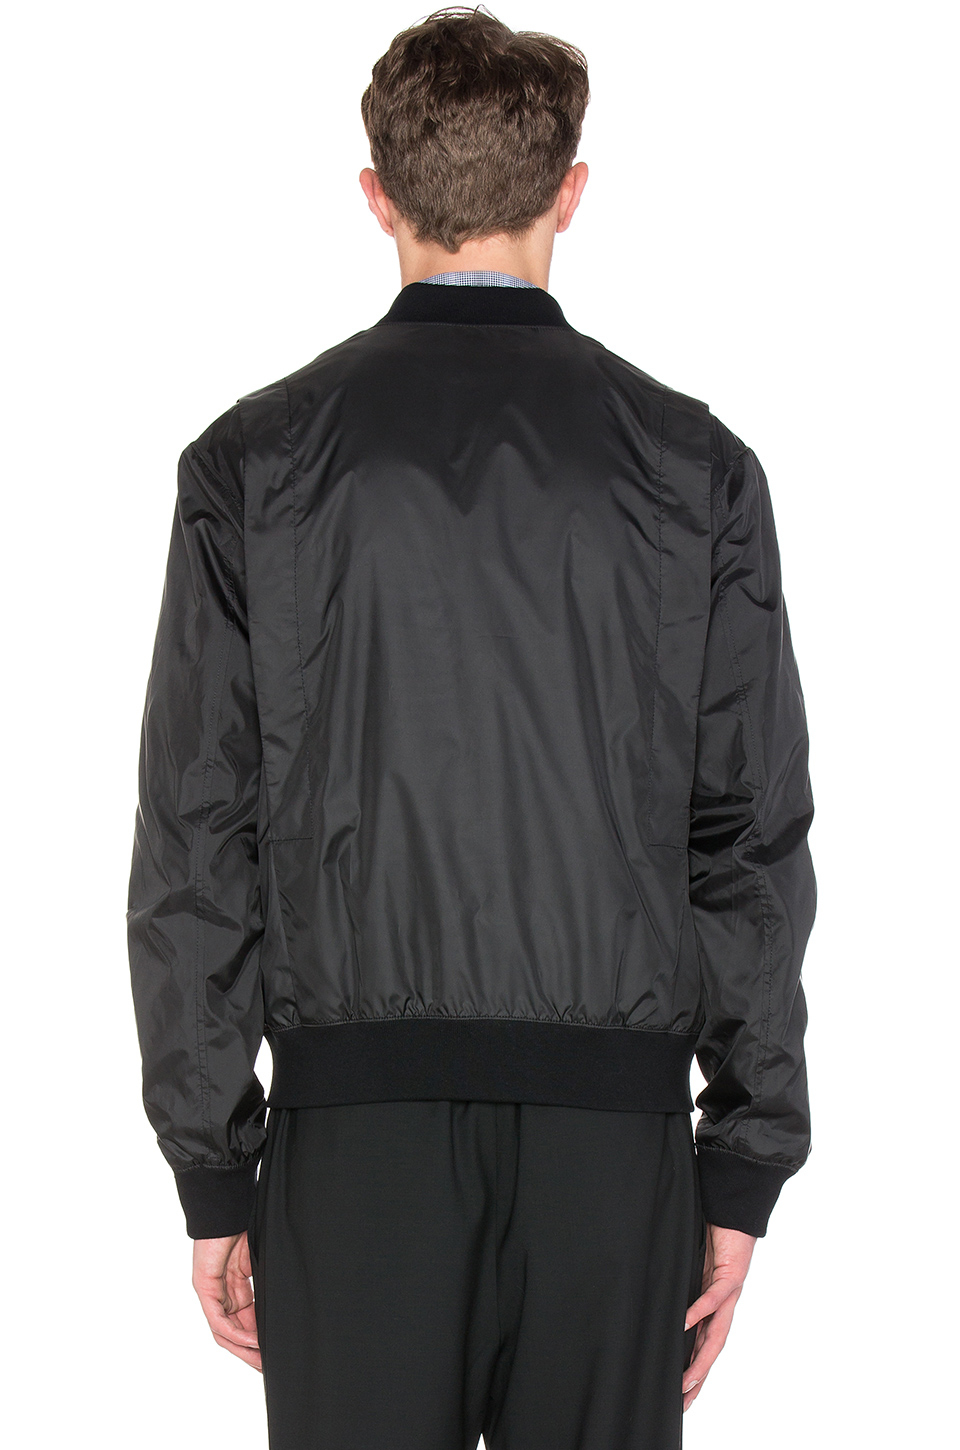 Abercrombie And Fitch Men Black Jacket Full Zip Male